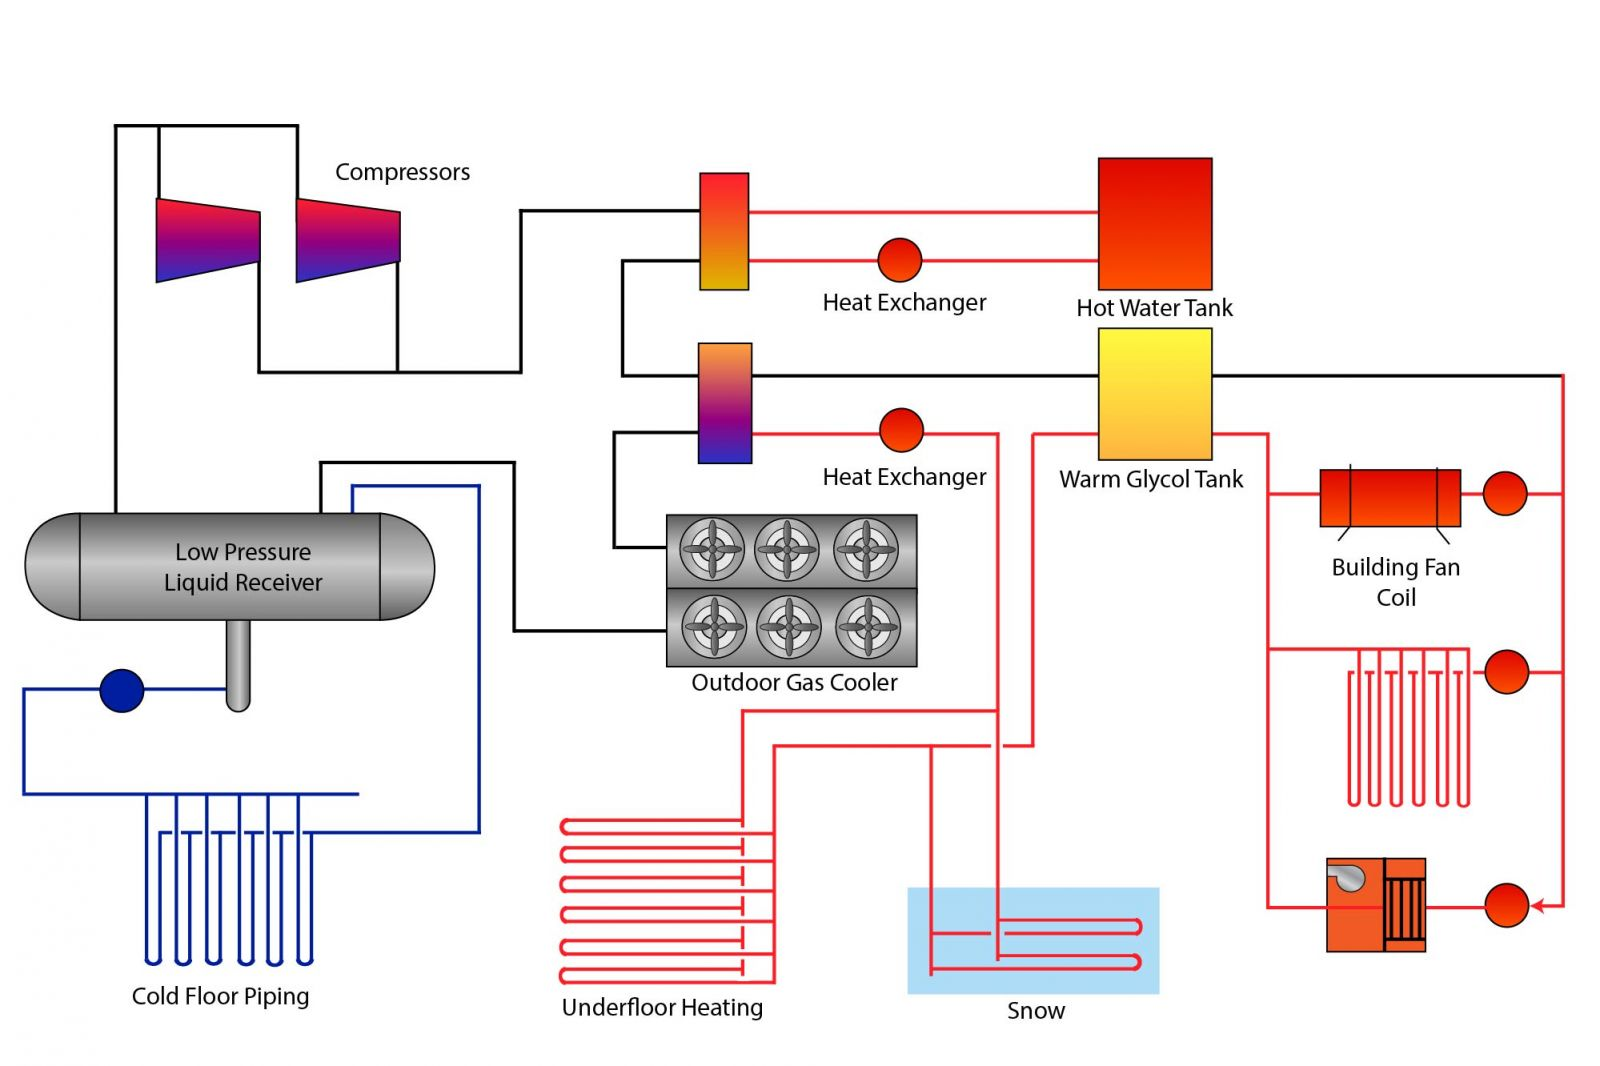 hight resolution of appendix 5 figure 1 diagram of an arena refrigeration system with co2 under the slab of ice